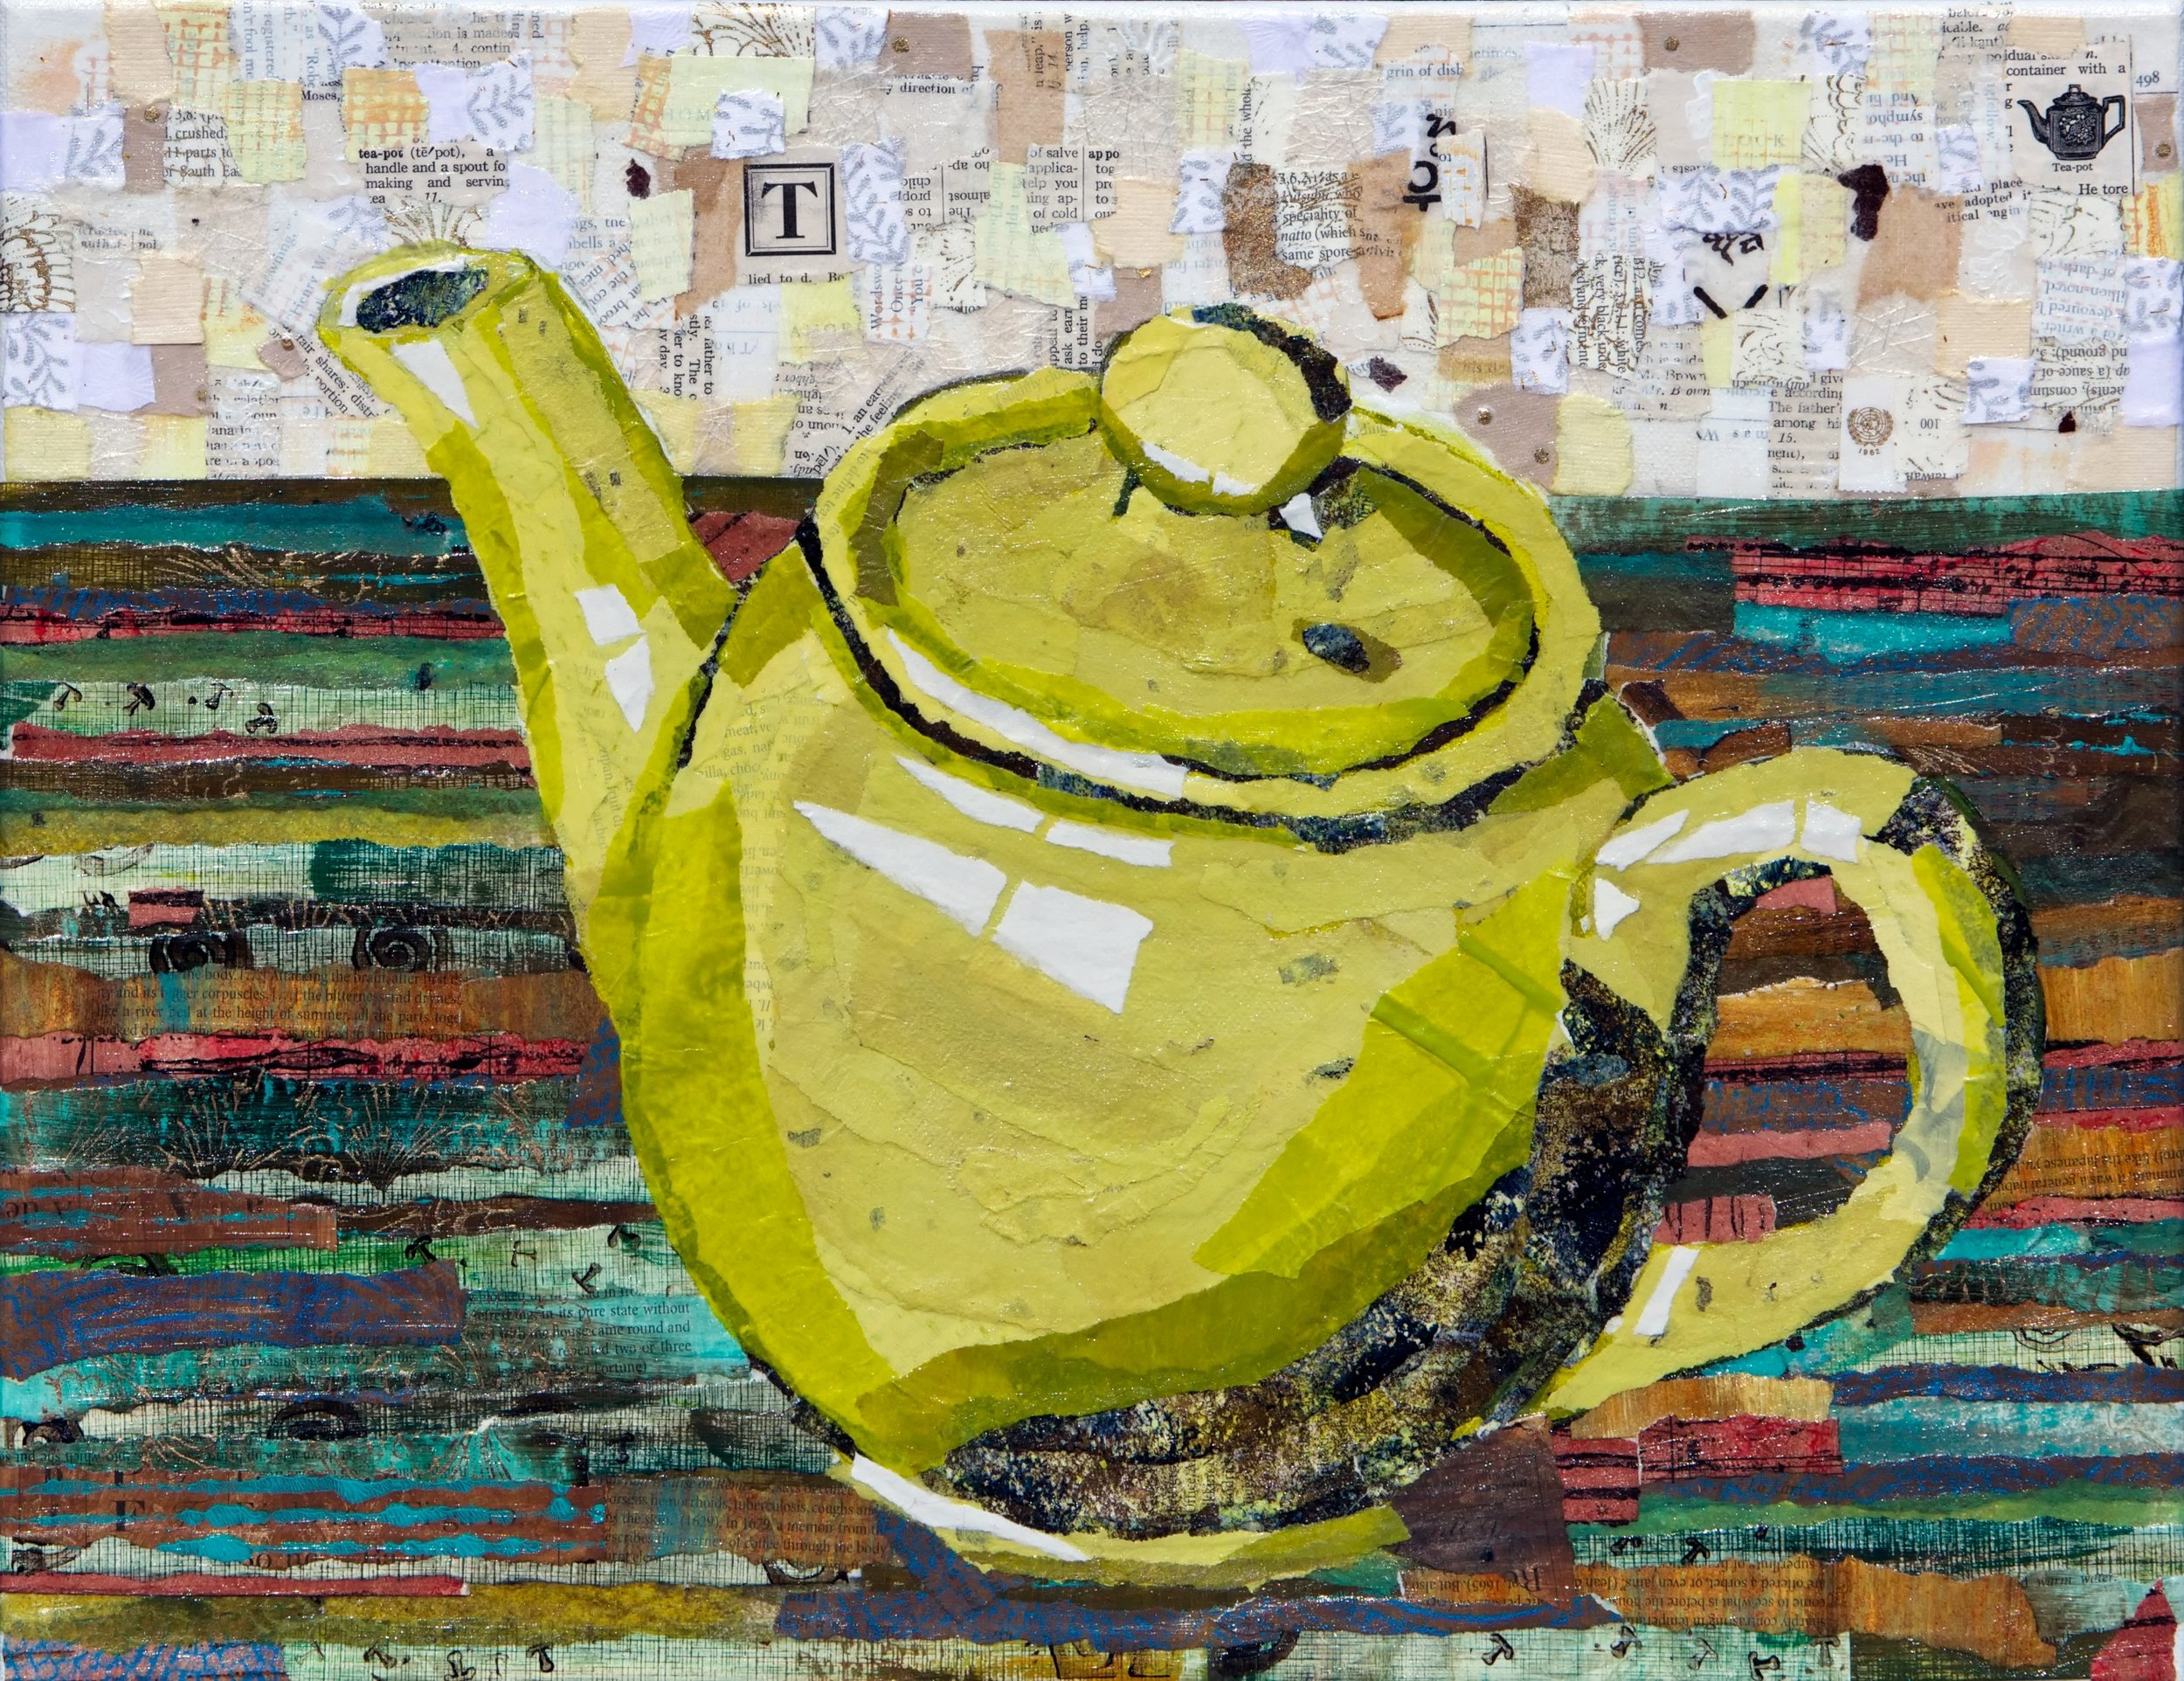 teapot collage photo cropped.jpg